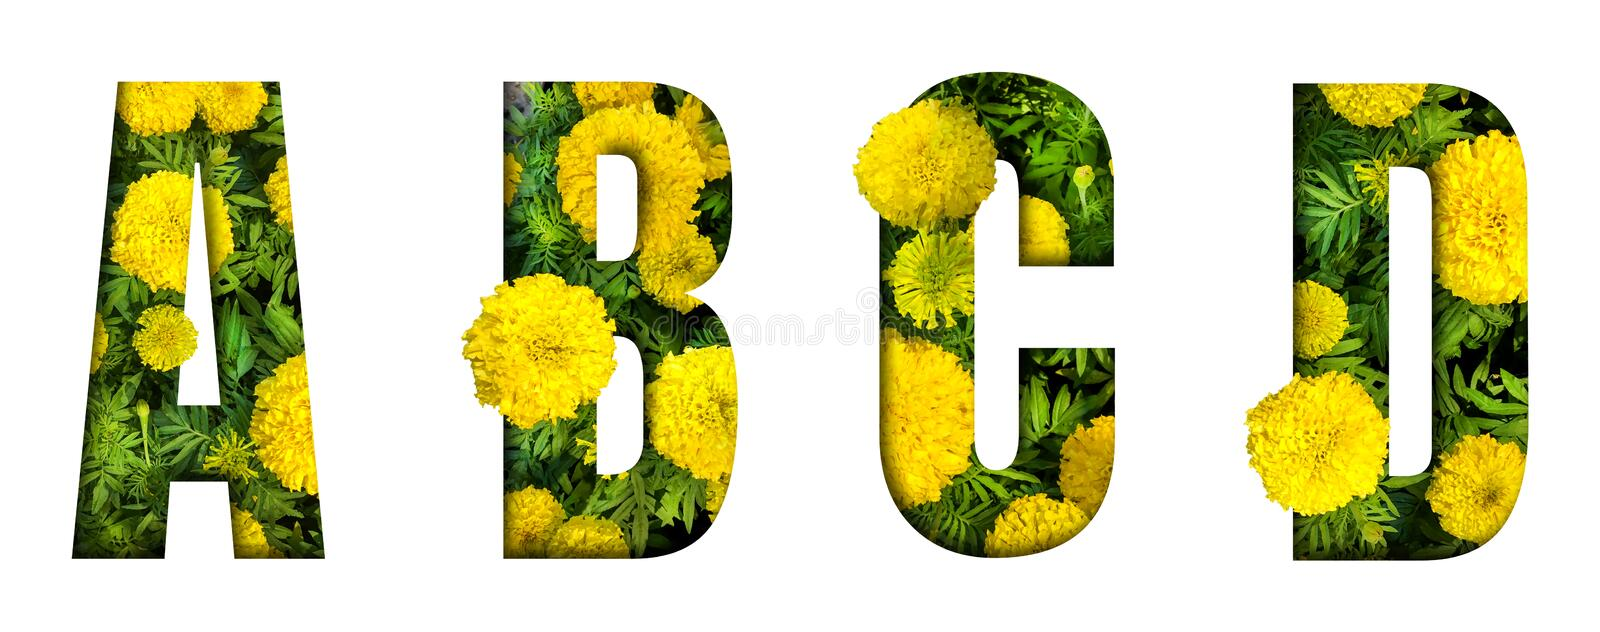 Alphabet A, B, C, D made from marigold flower font isolated on white background. Beautiful character concept stock images